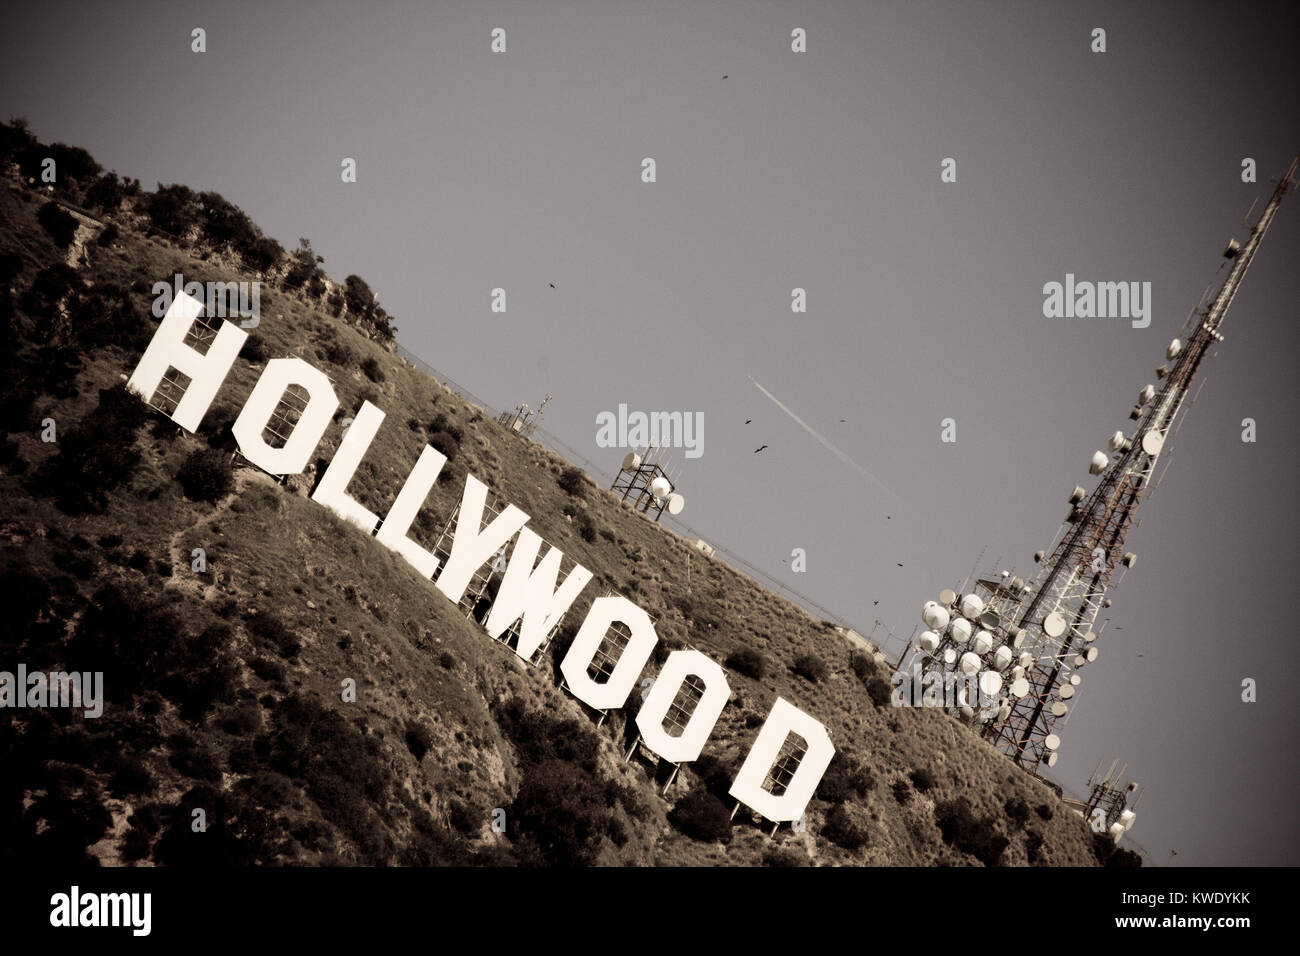 The Hollywood sign overlooking Los Angeles. The iconic sign was originally created in 1923. - Stock Image